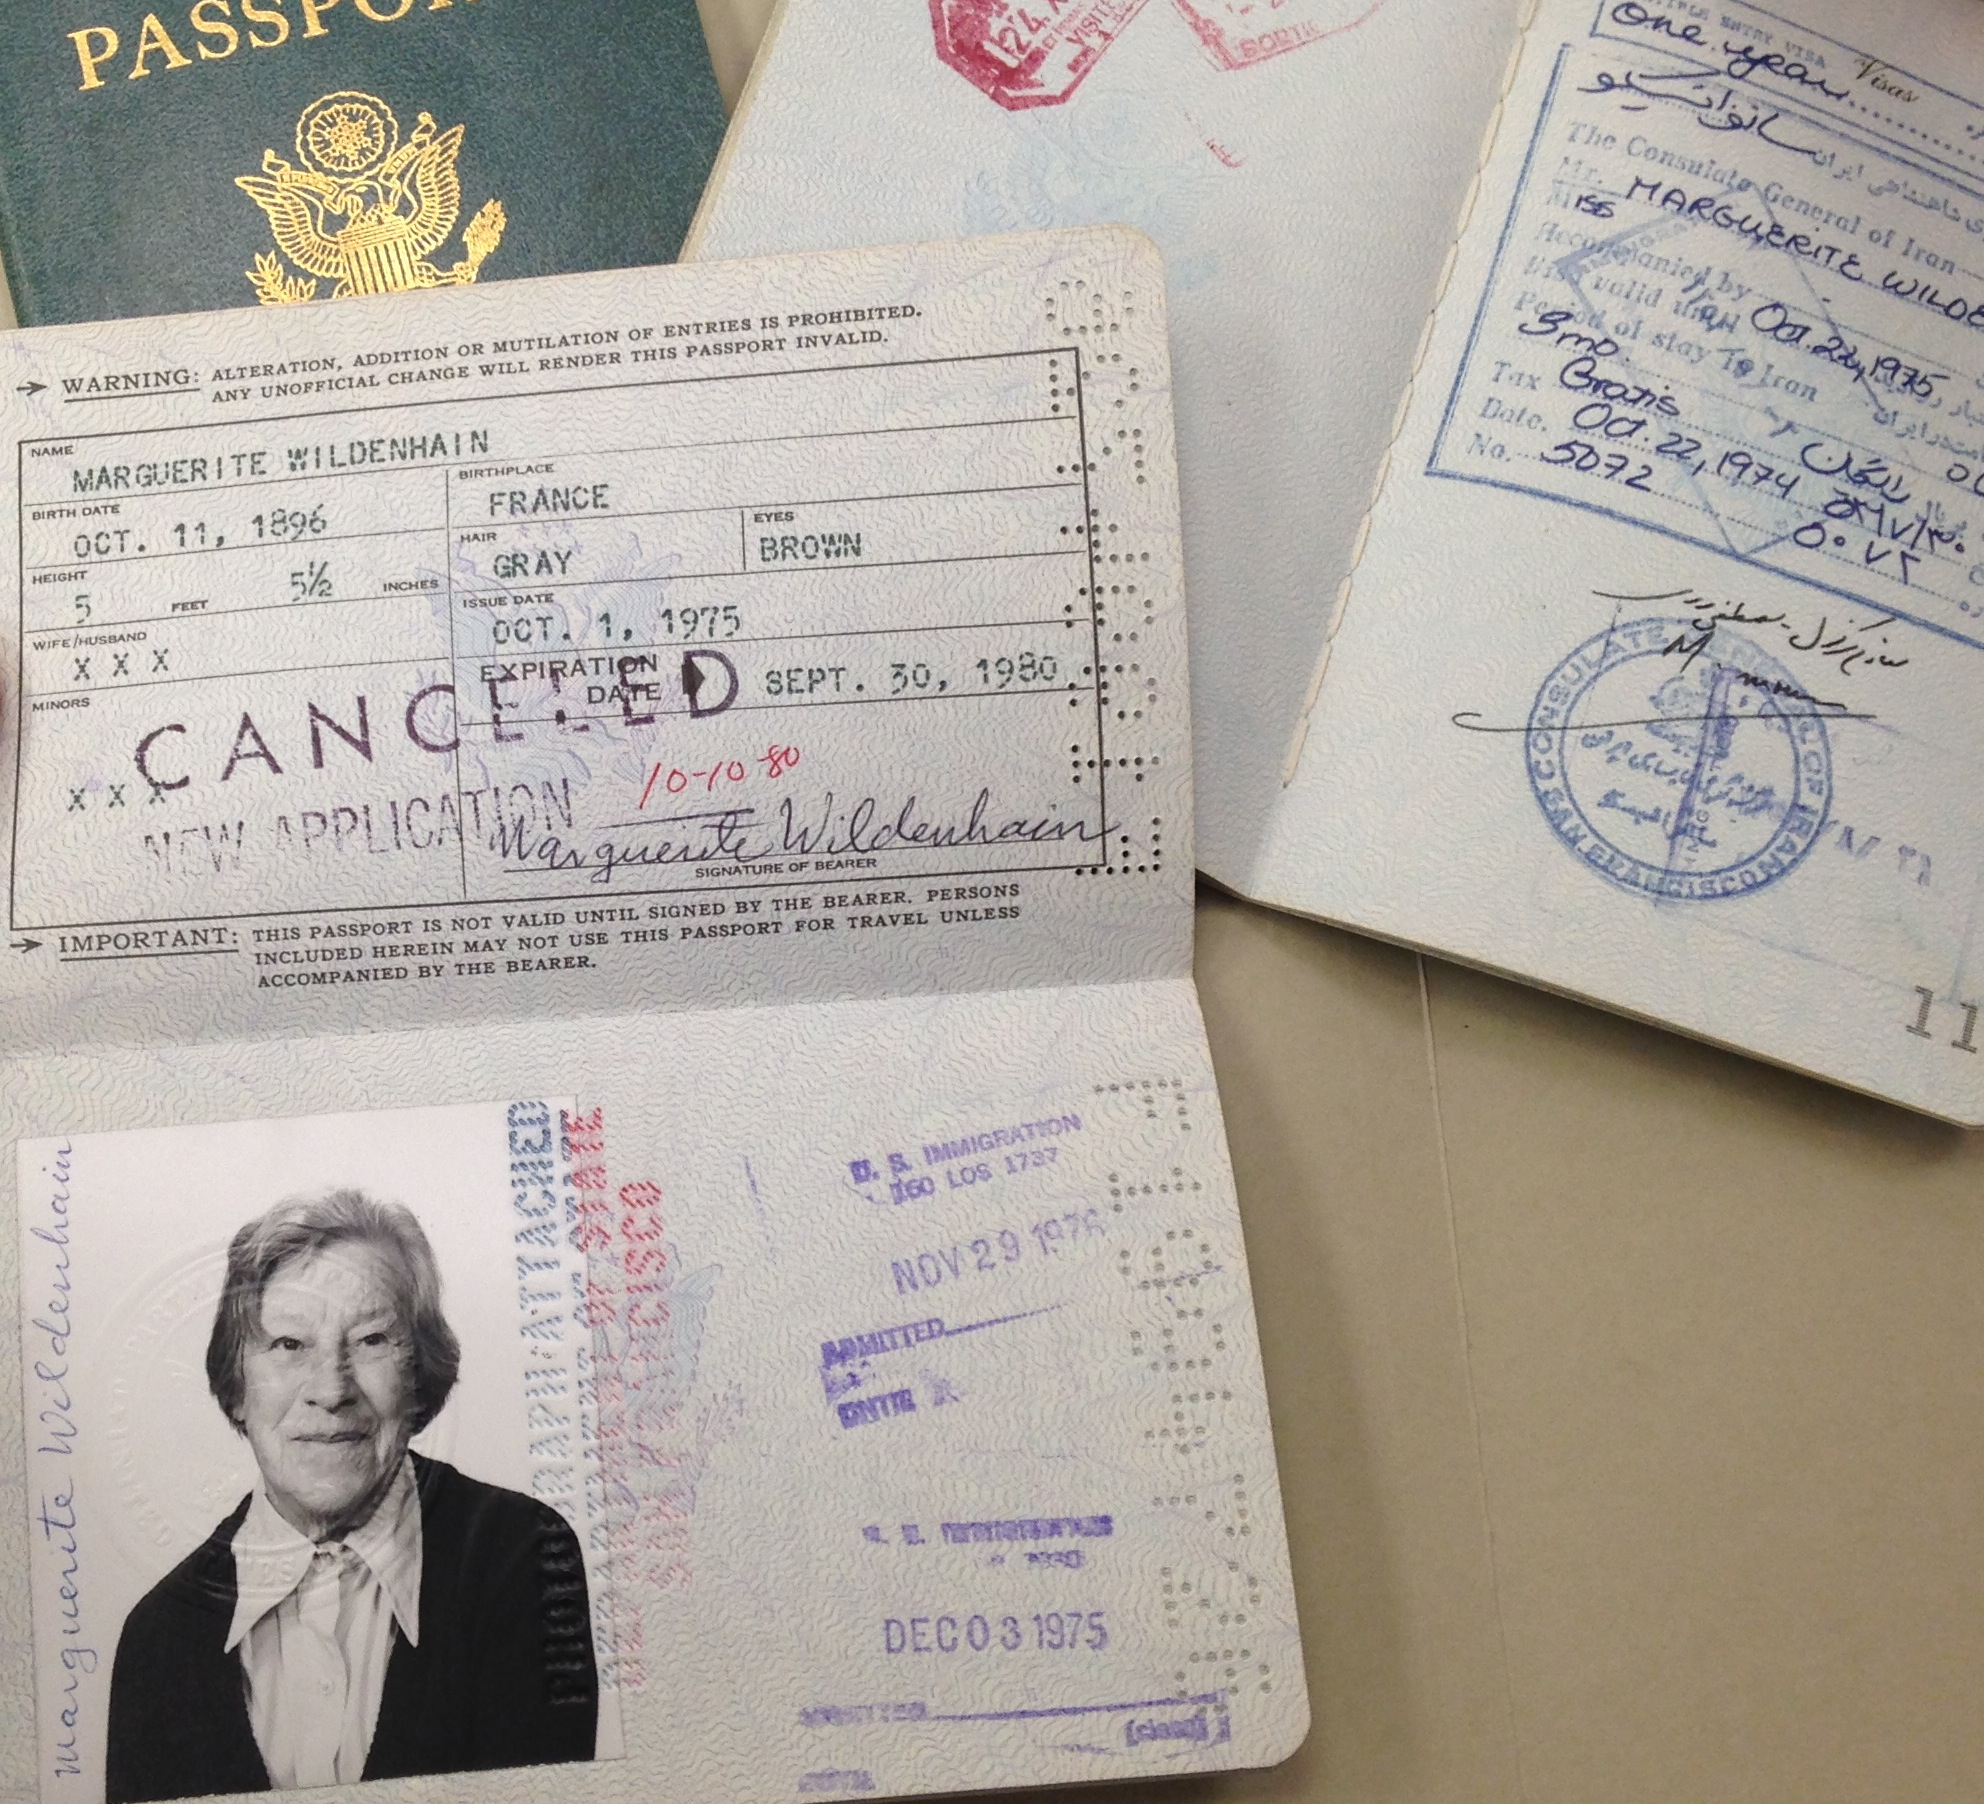 Passports belonging to Marguerite Wildenhain that show numerous travel visas and stamps, including a year's visit to Iran in 1975.